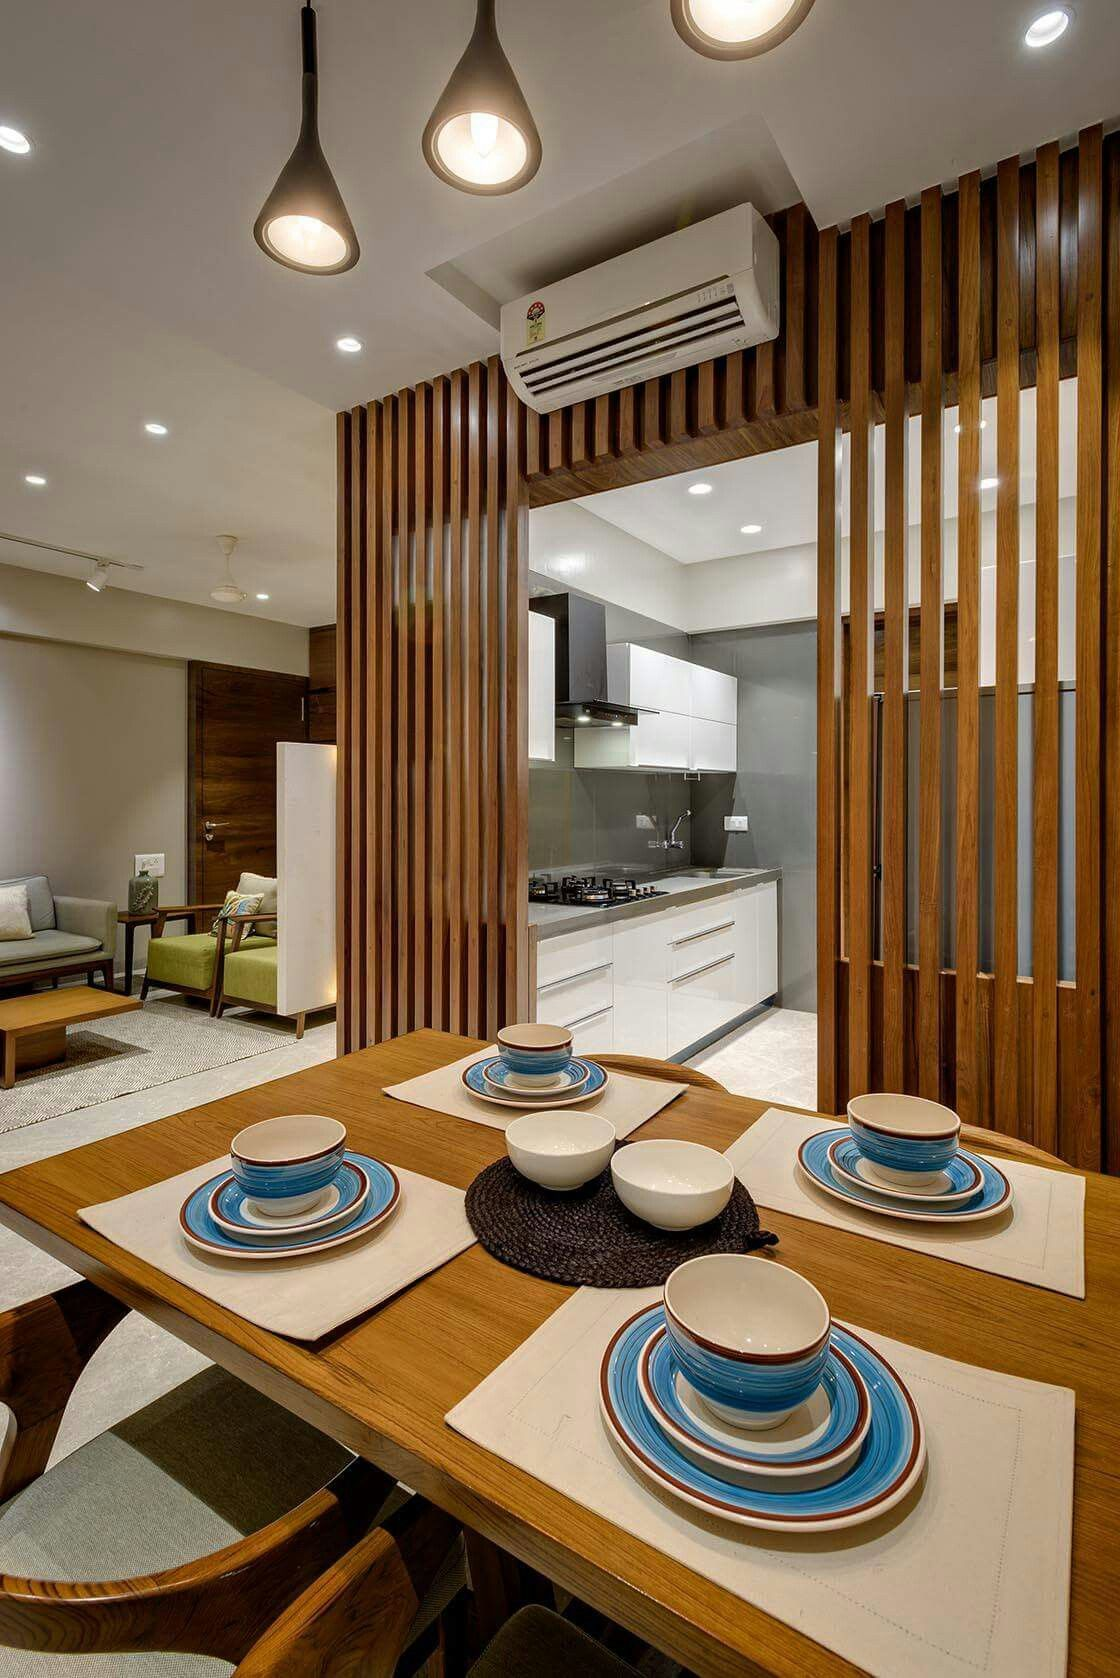 Dining table design area dinning furniture also pin by zenab shah on living in pinterest interior rh